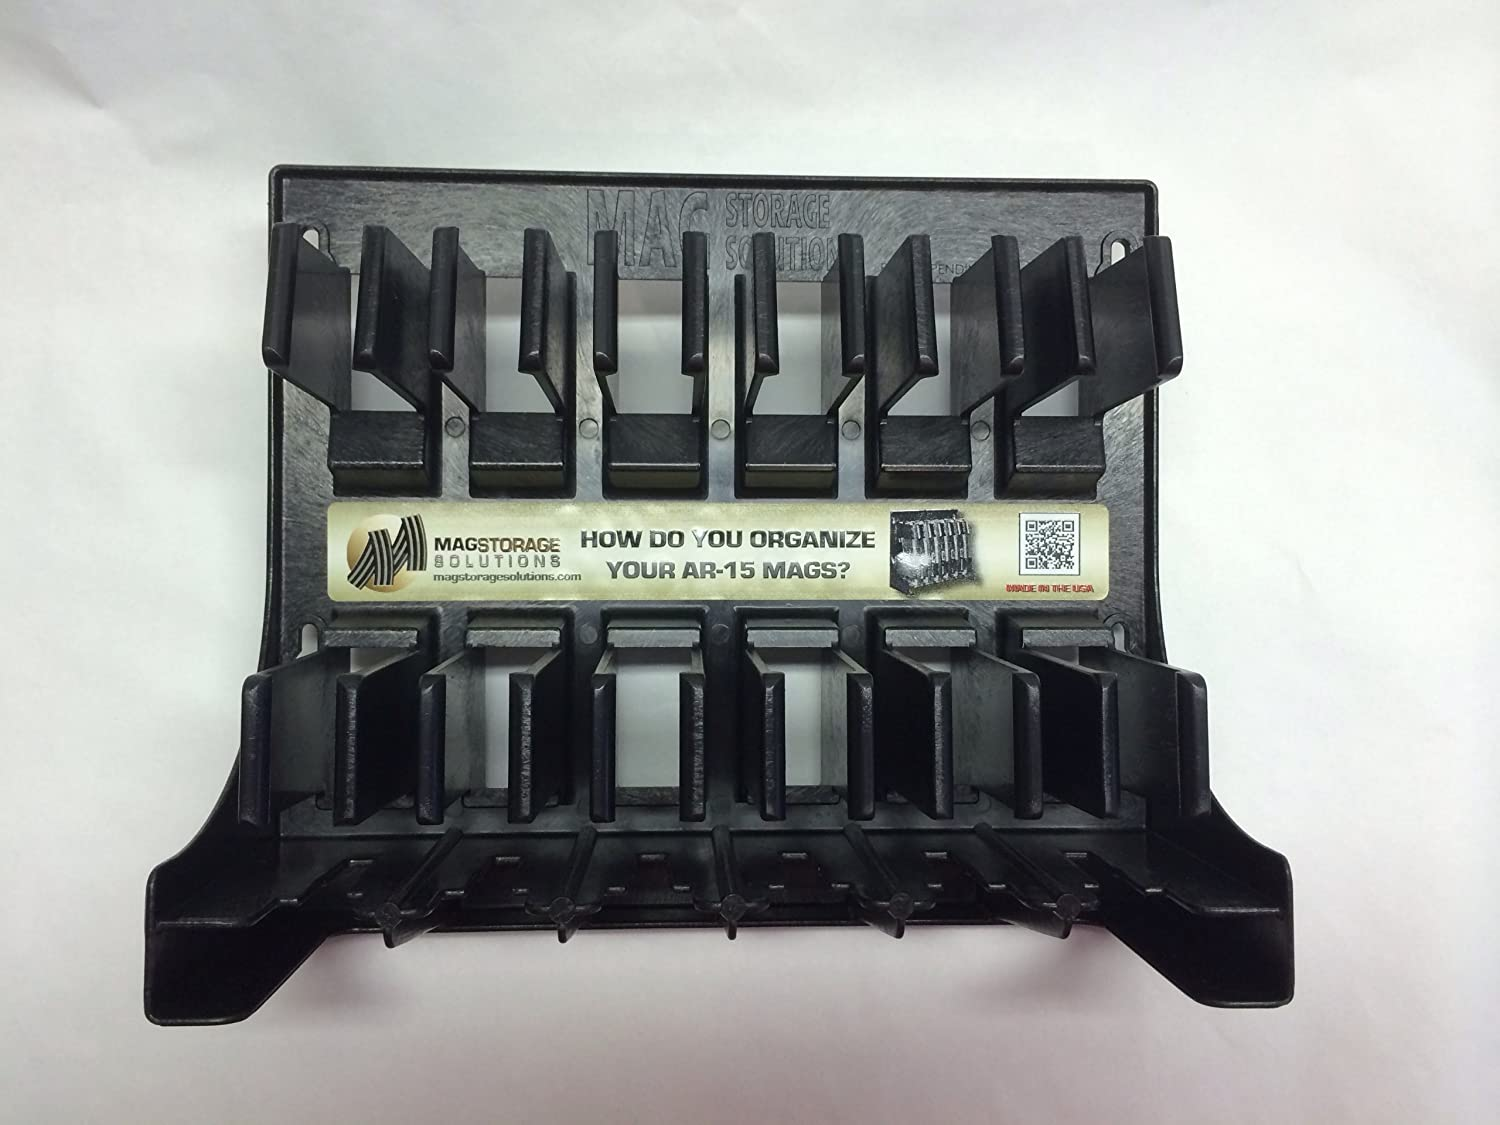 Mag Storage Solutions AR-15 5.56 .223 MagHolder Magazine Holder Storage Rack Magpul AR15 дальномер практика дл 30 640 162